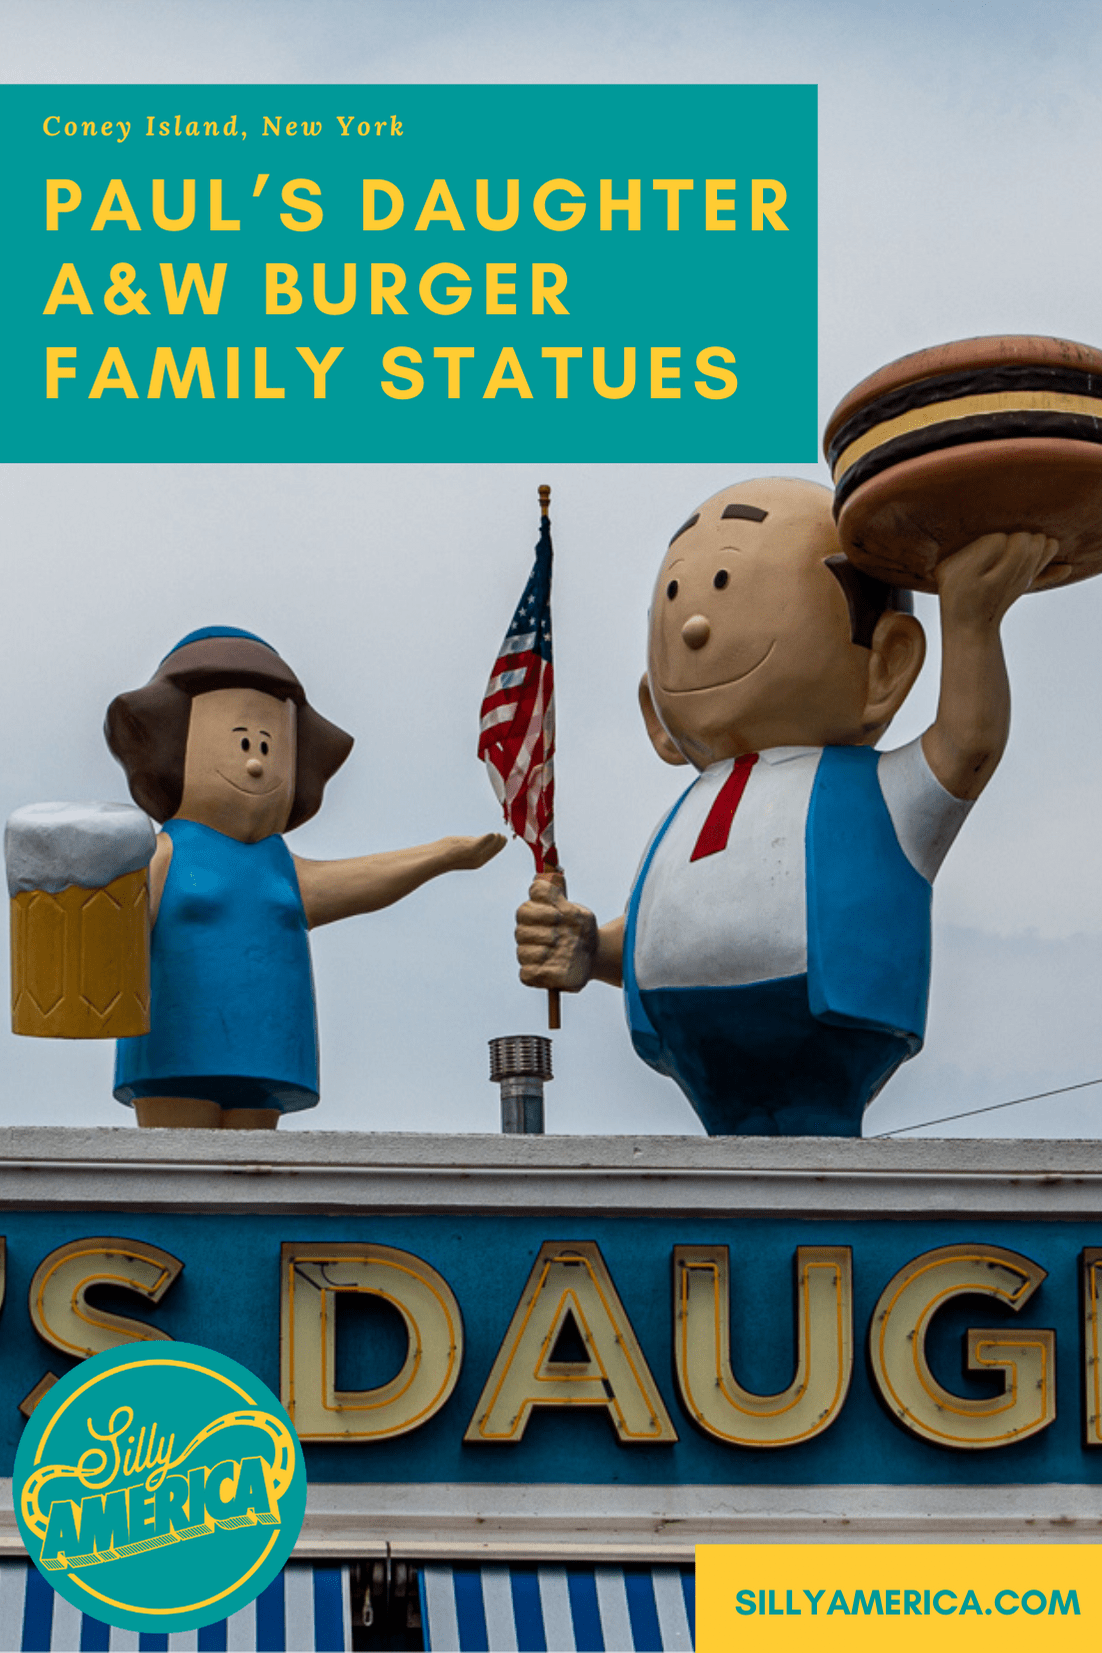 Paul's Daughter is one of the oldest restaurants on the Coney Island boardwalk. It's known for cold beer, clam strips, lobster rolls…and the fiberglass mama and papa A&W Burger Family statues on their roof. Check out these New York roadside attractions when you visit Luna Park and Coney Island. #NewYorkRoadsideAttractions #NewYorkRoadsideAttraction #RoadsideAttractions #RoadsideAttraction #RoadTrip #NewYorkRoadTrip #NewYorkRoadTripBucketLists #NewYorkBucketLists  #ThingsToDoInNewYork